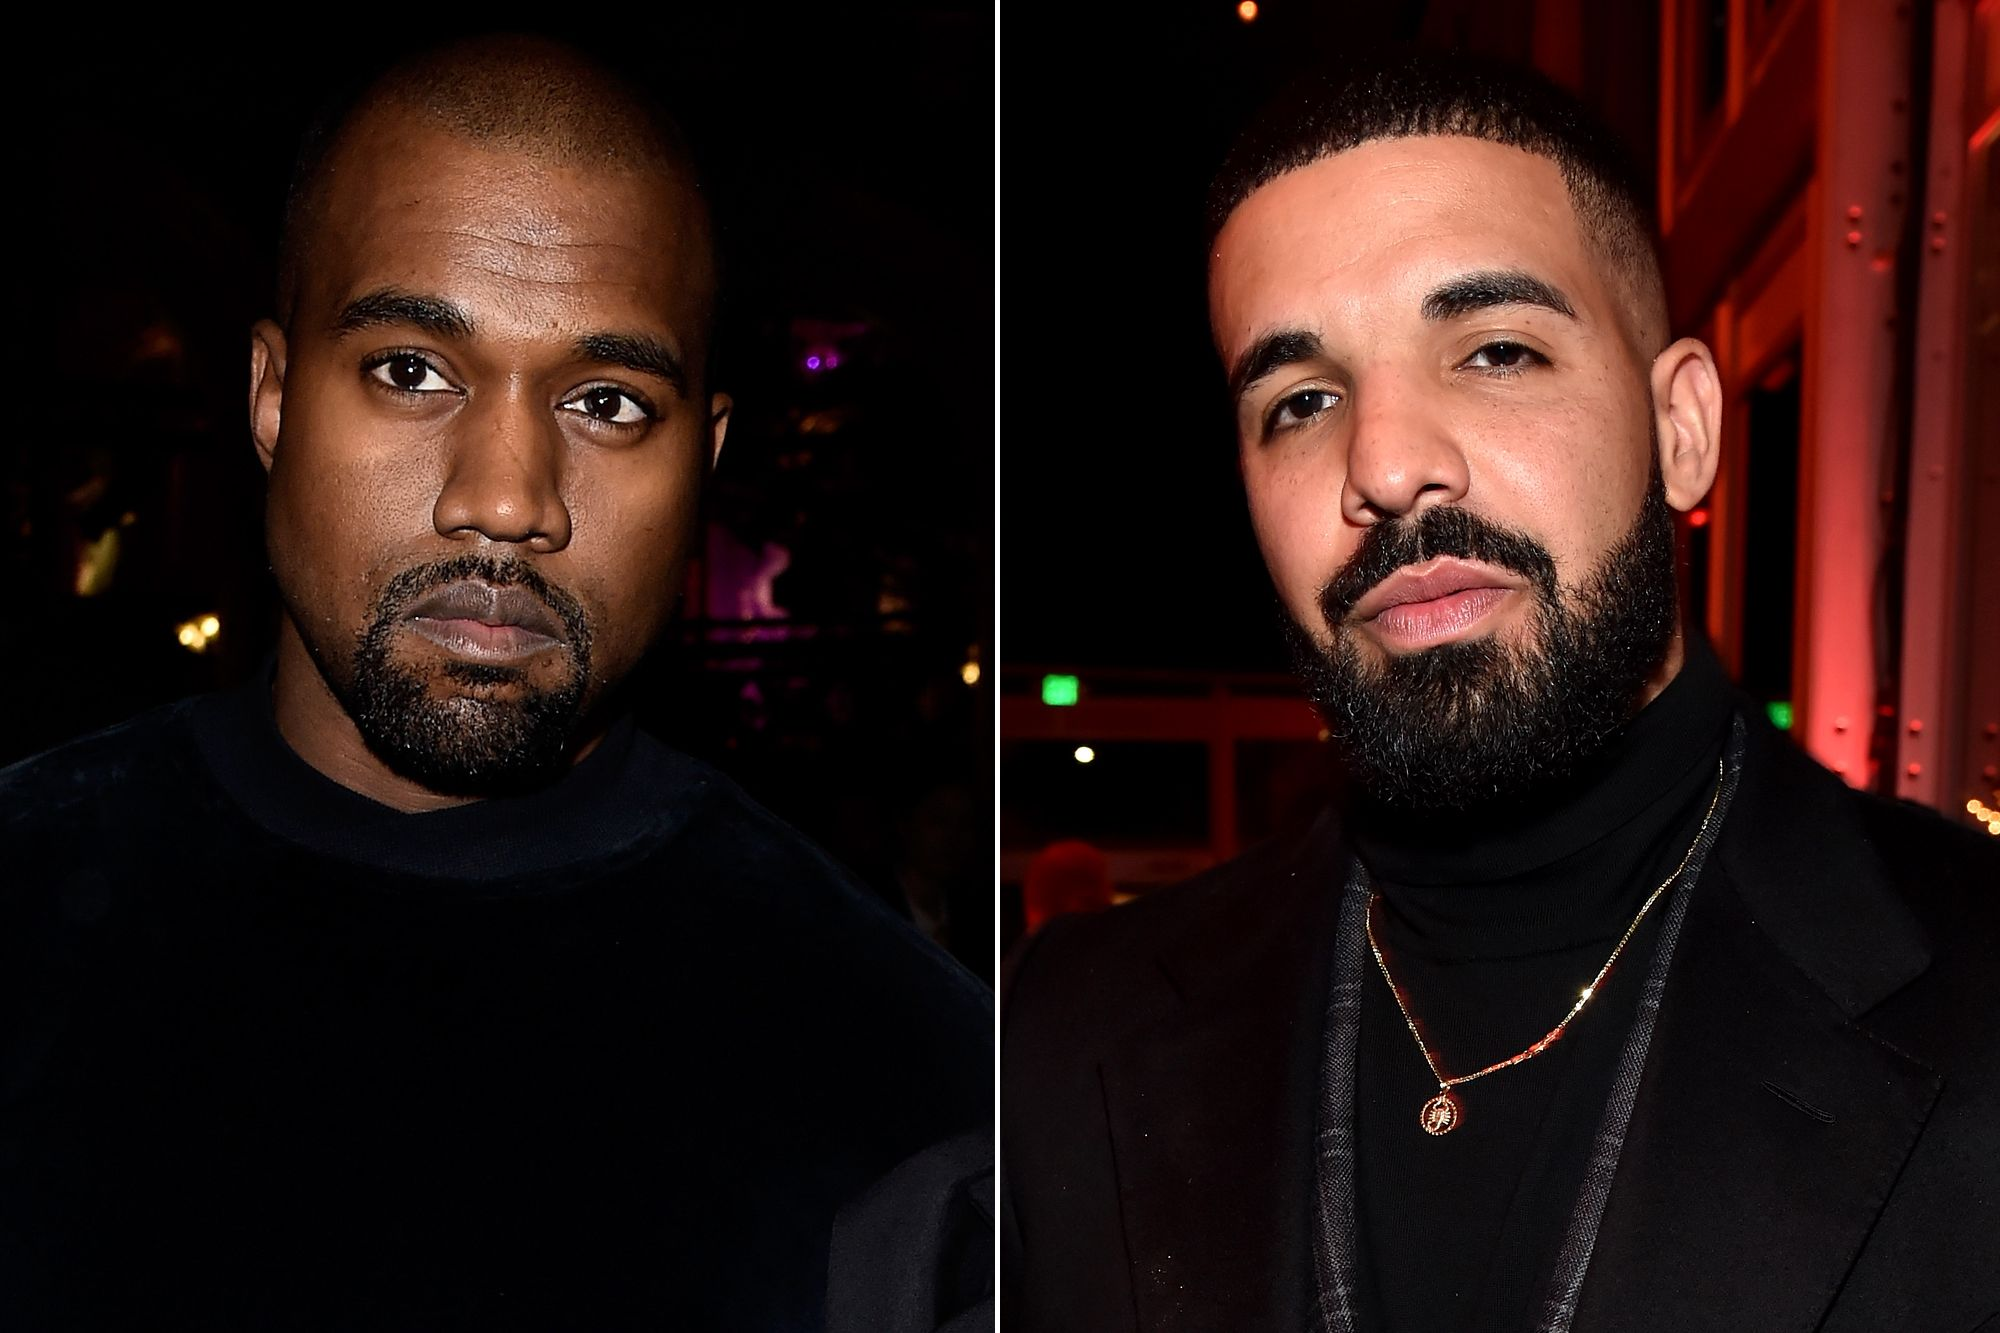 Kanye West Lashes Out at Drake for Following His Wife on